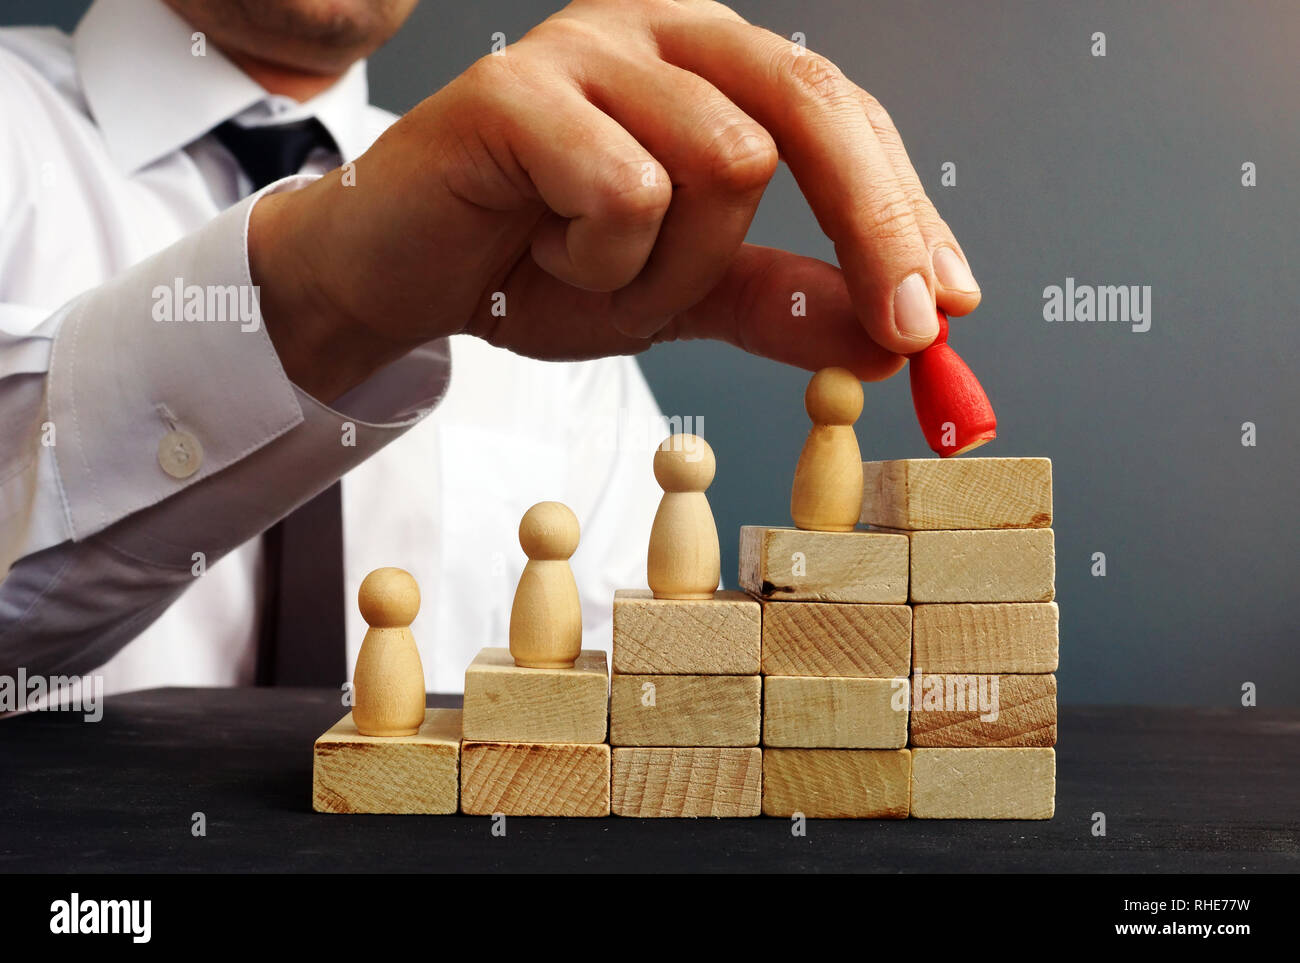 Job Promotion. Manager is holding figurine near career ladder. Worker raises. - Stock Image